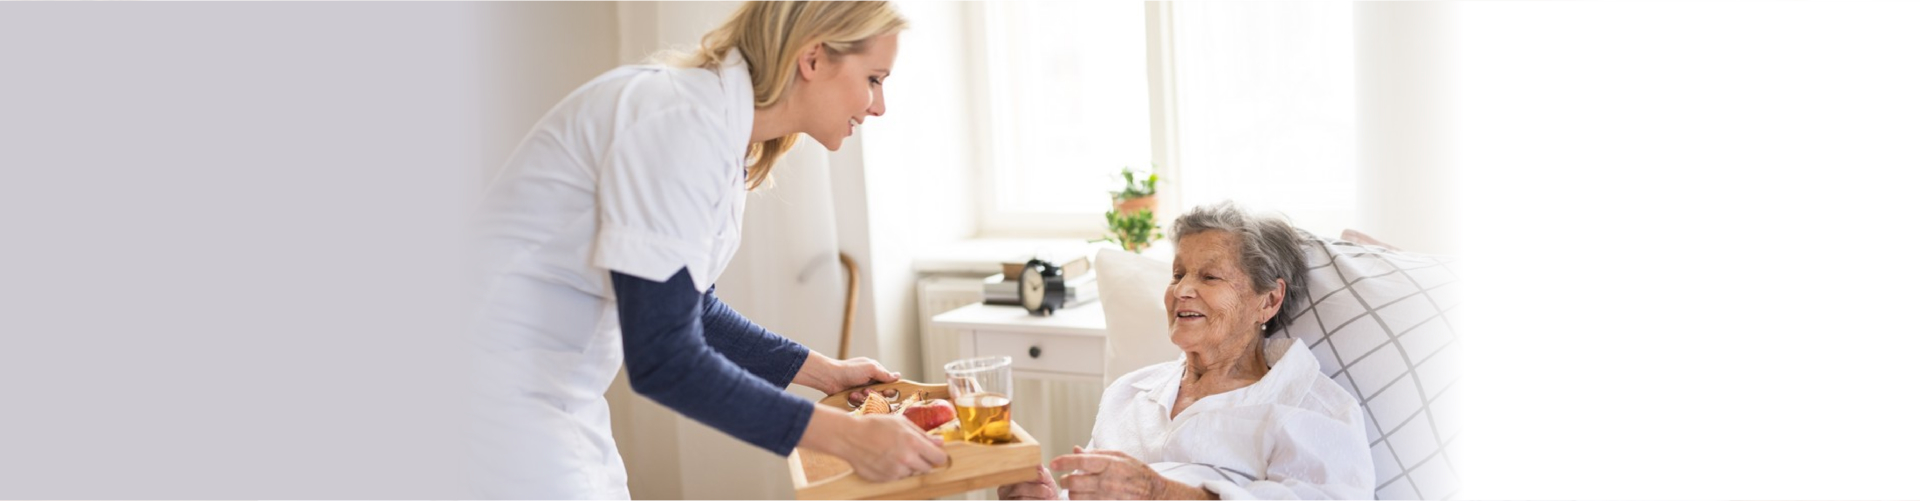 Ayoung health visitor bringing breakfast to a sick senior women lying in bed at home.